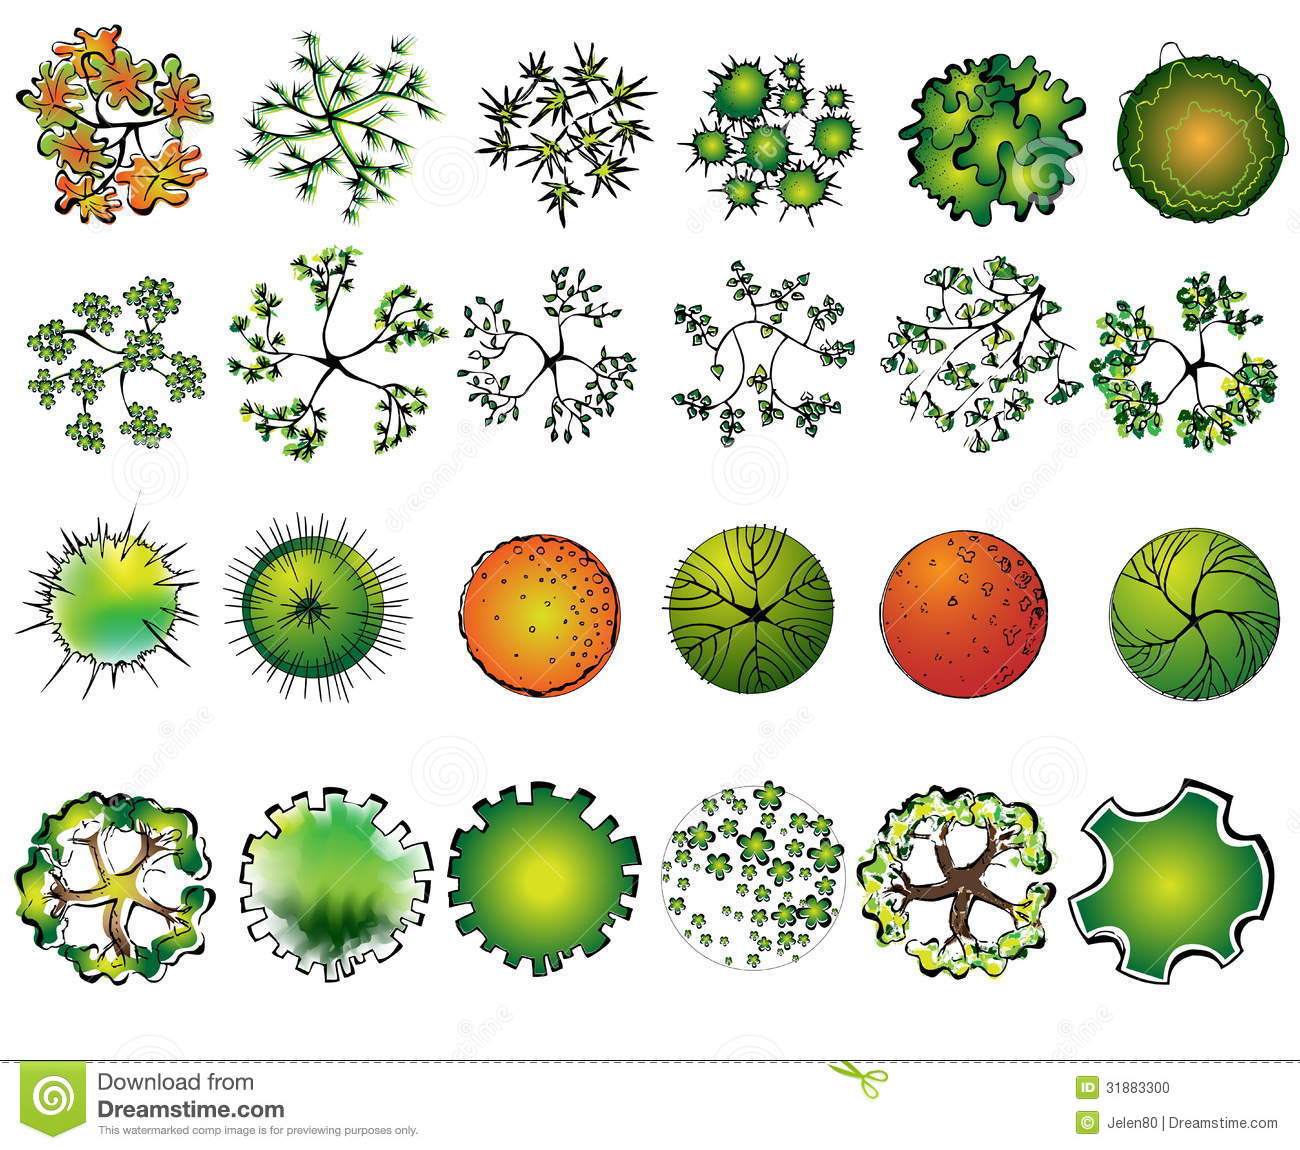 A set of colored treetop symbols stock photo image 31883300 for Garden design graphics